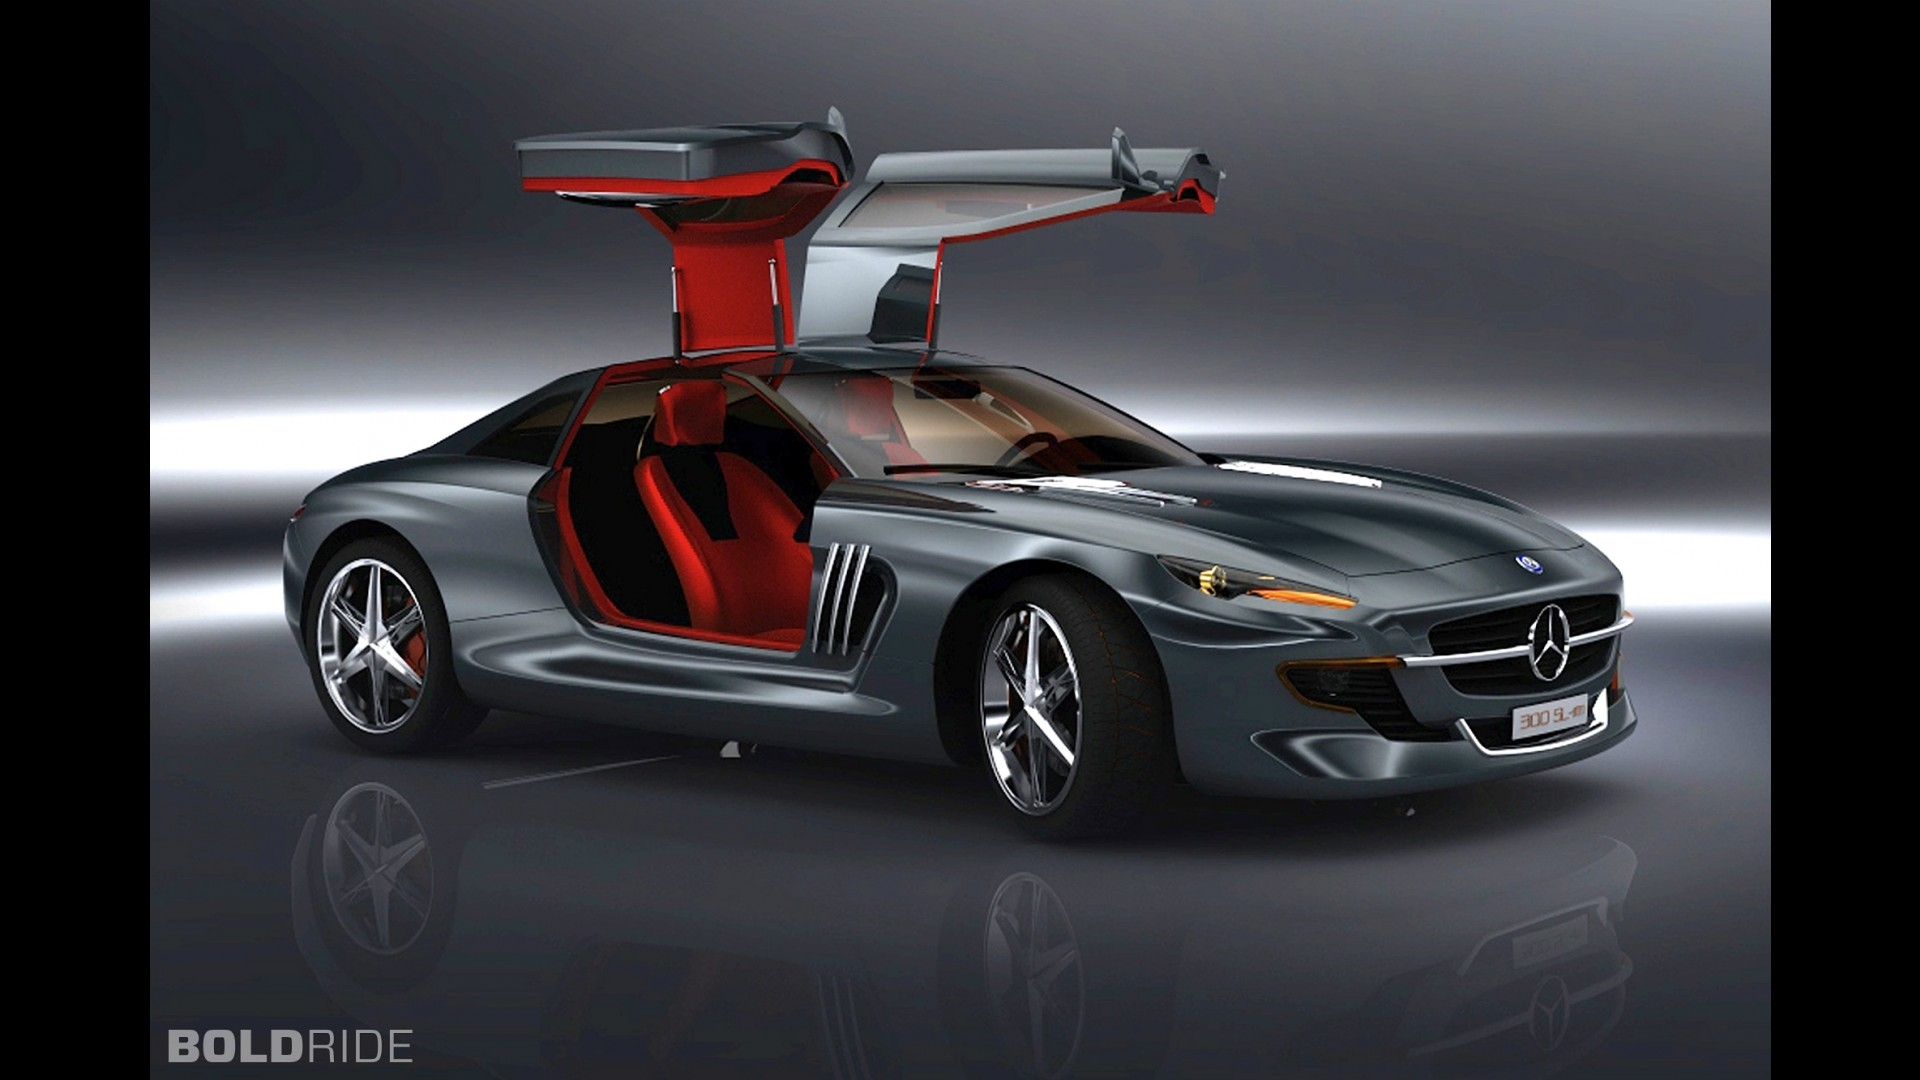 mercedes benz 300 sl gullwing concept by slimane toubal. Black Bedroom Furniture Sets. Home Design Ideas